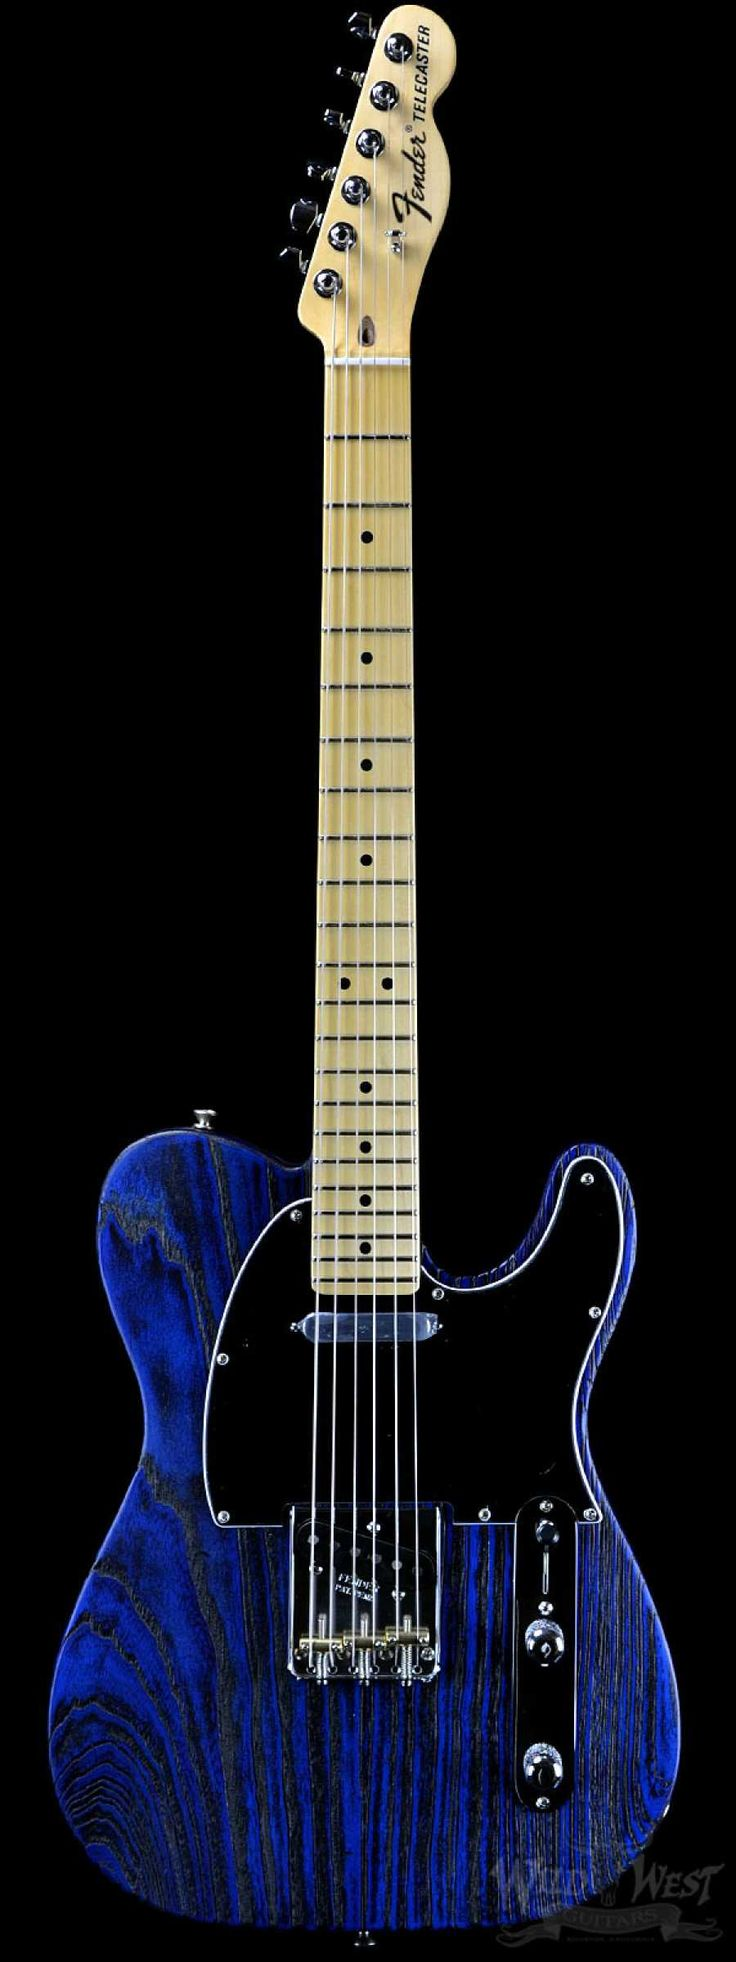 Fender USA Limited Edition Sandblasted Telecaster Sapphire Blue Transparent - Wild West Guitars